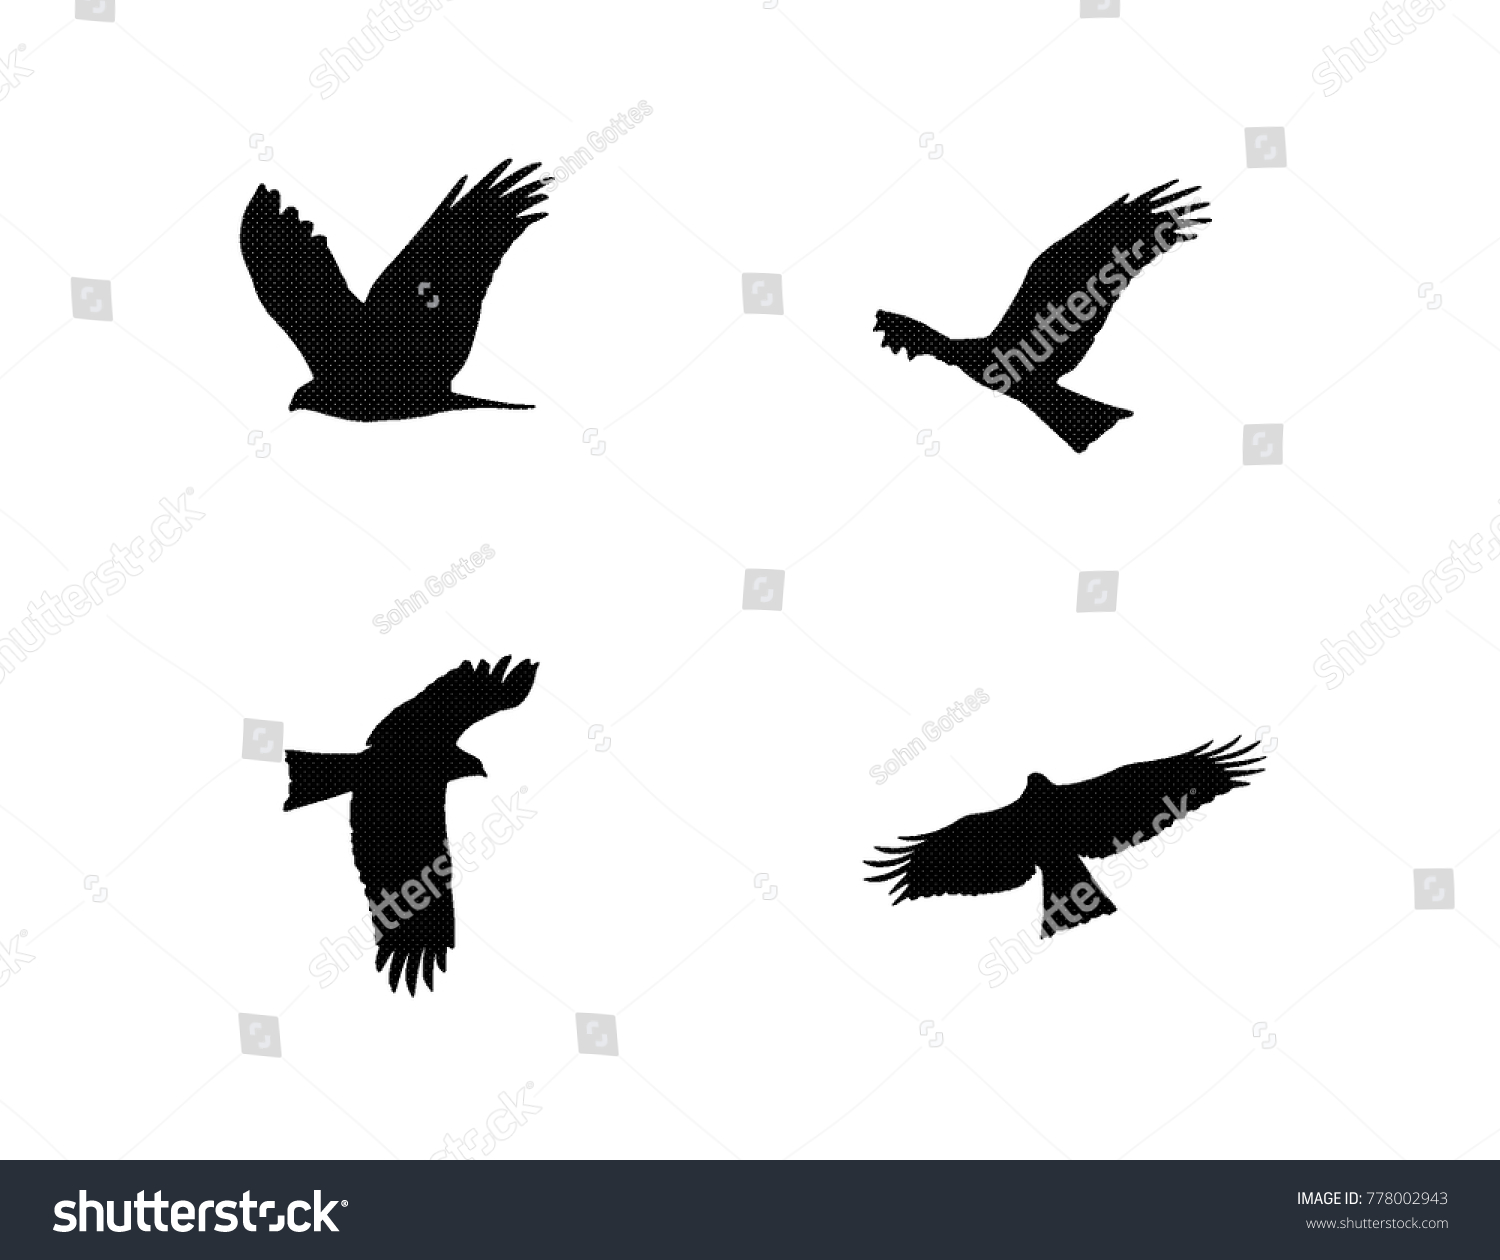 stock-vector-eagle-various-flying-format